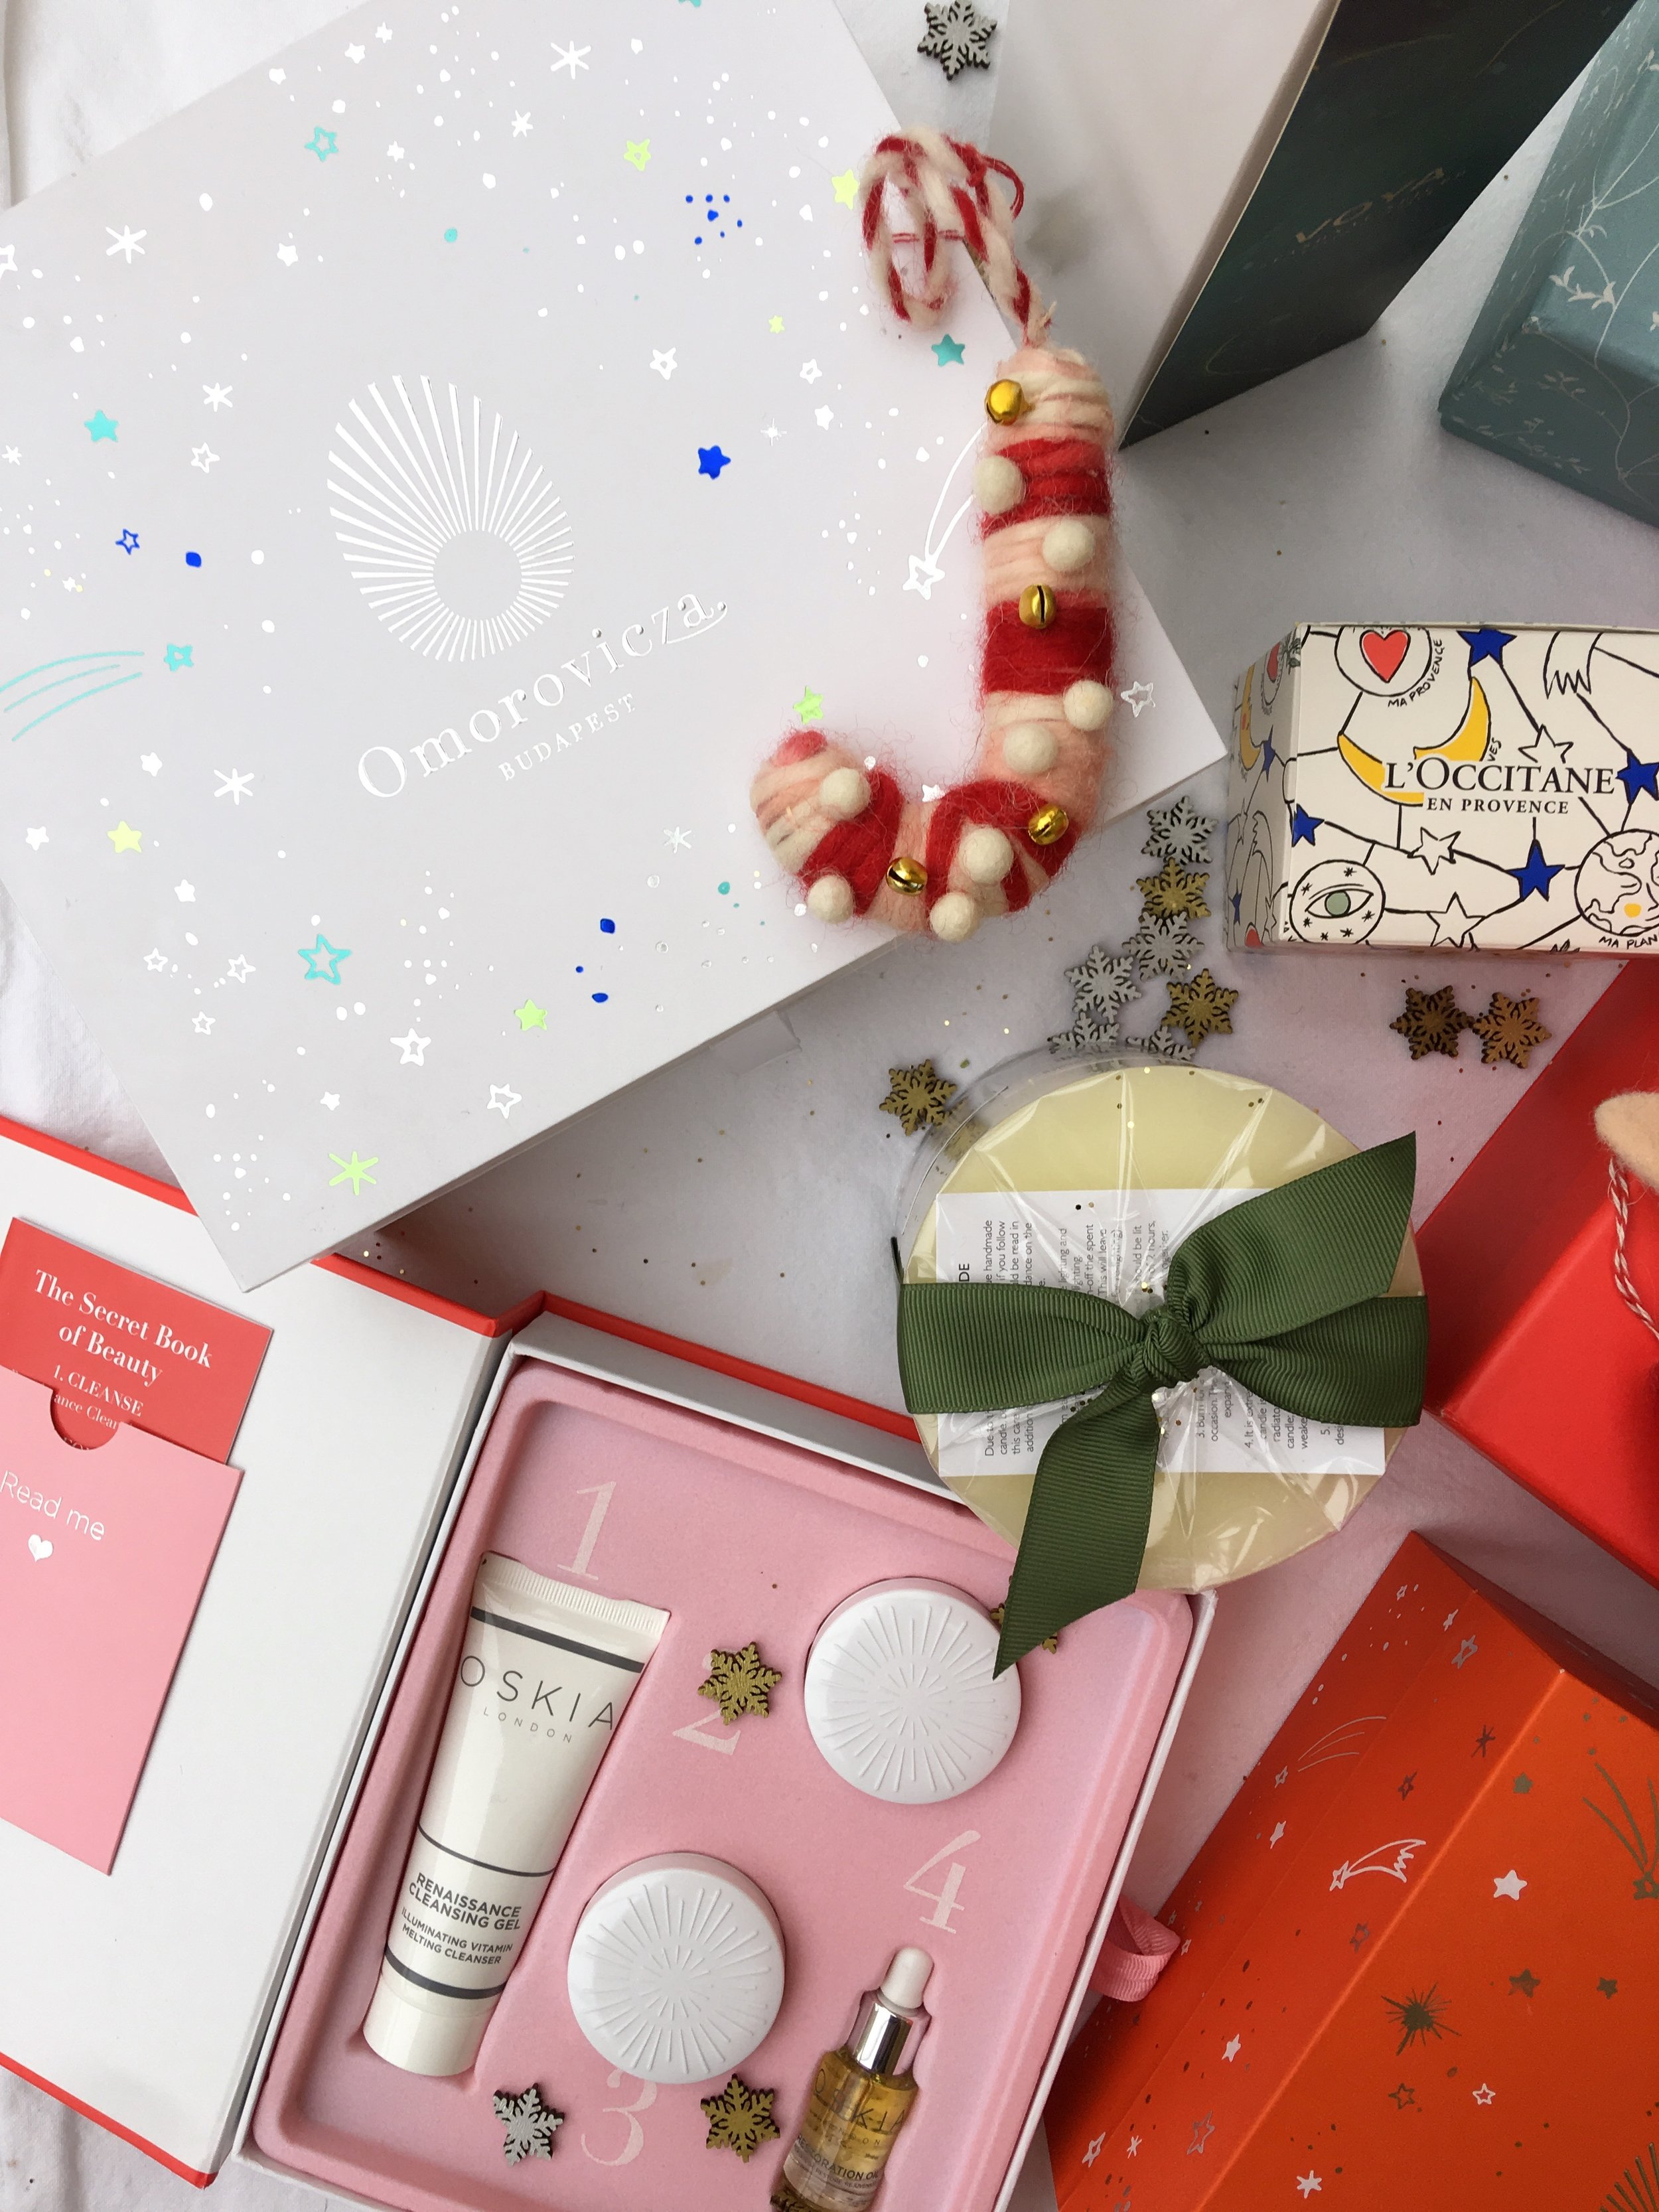 THE BEAUTY CHRISTMAS GIFT GUIDE - AMOUR OPHELIA